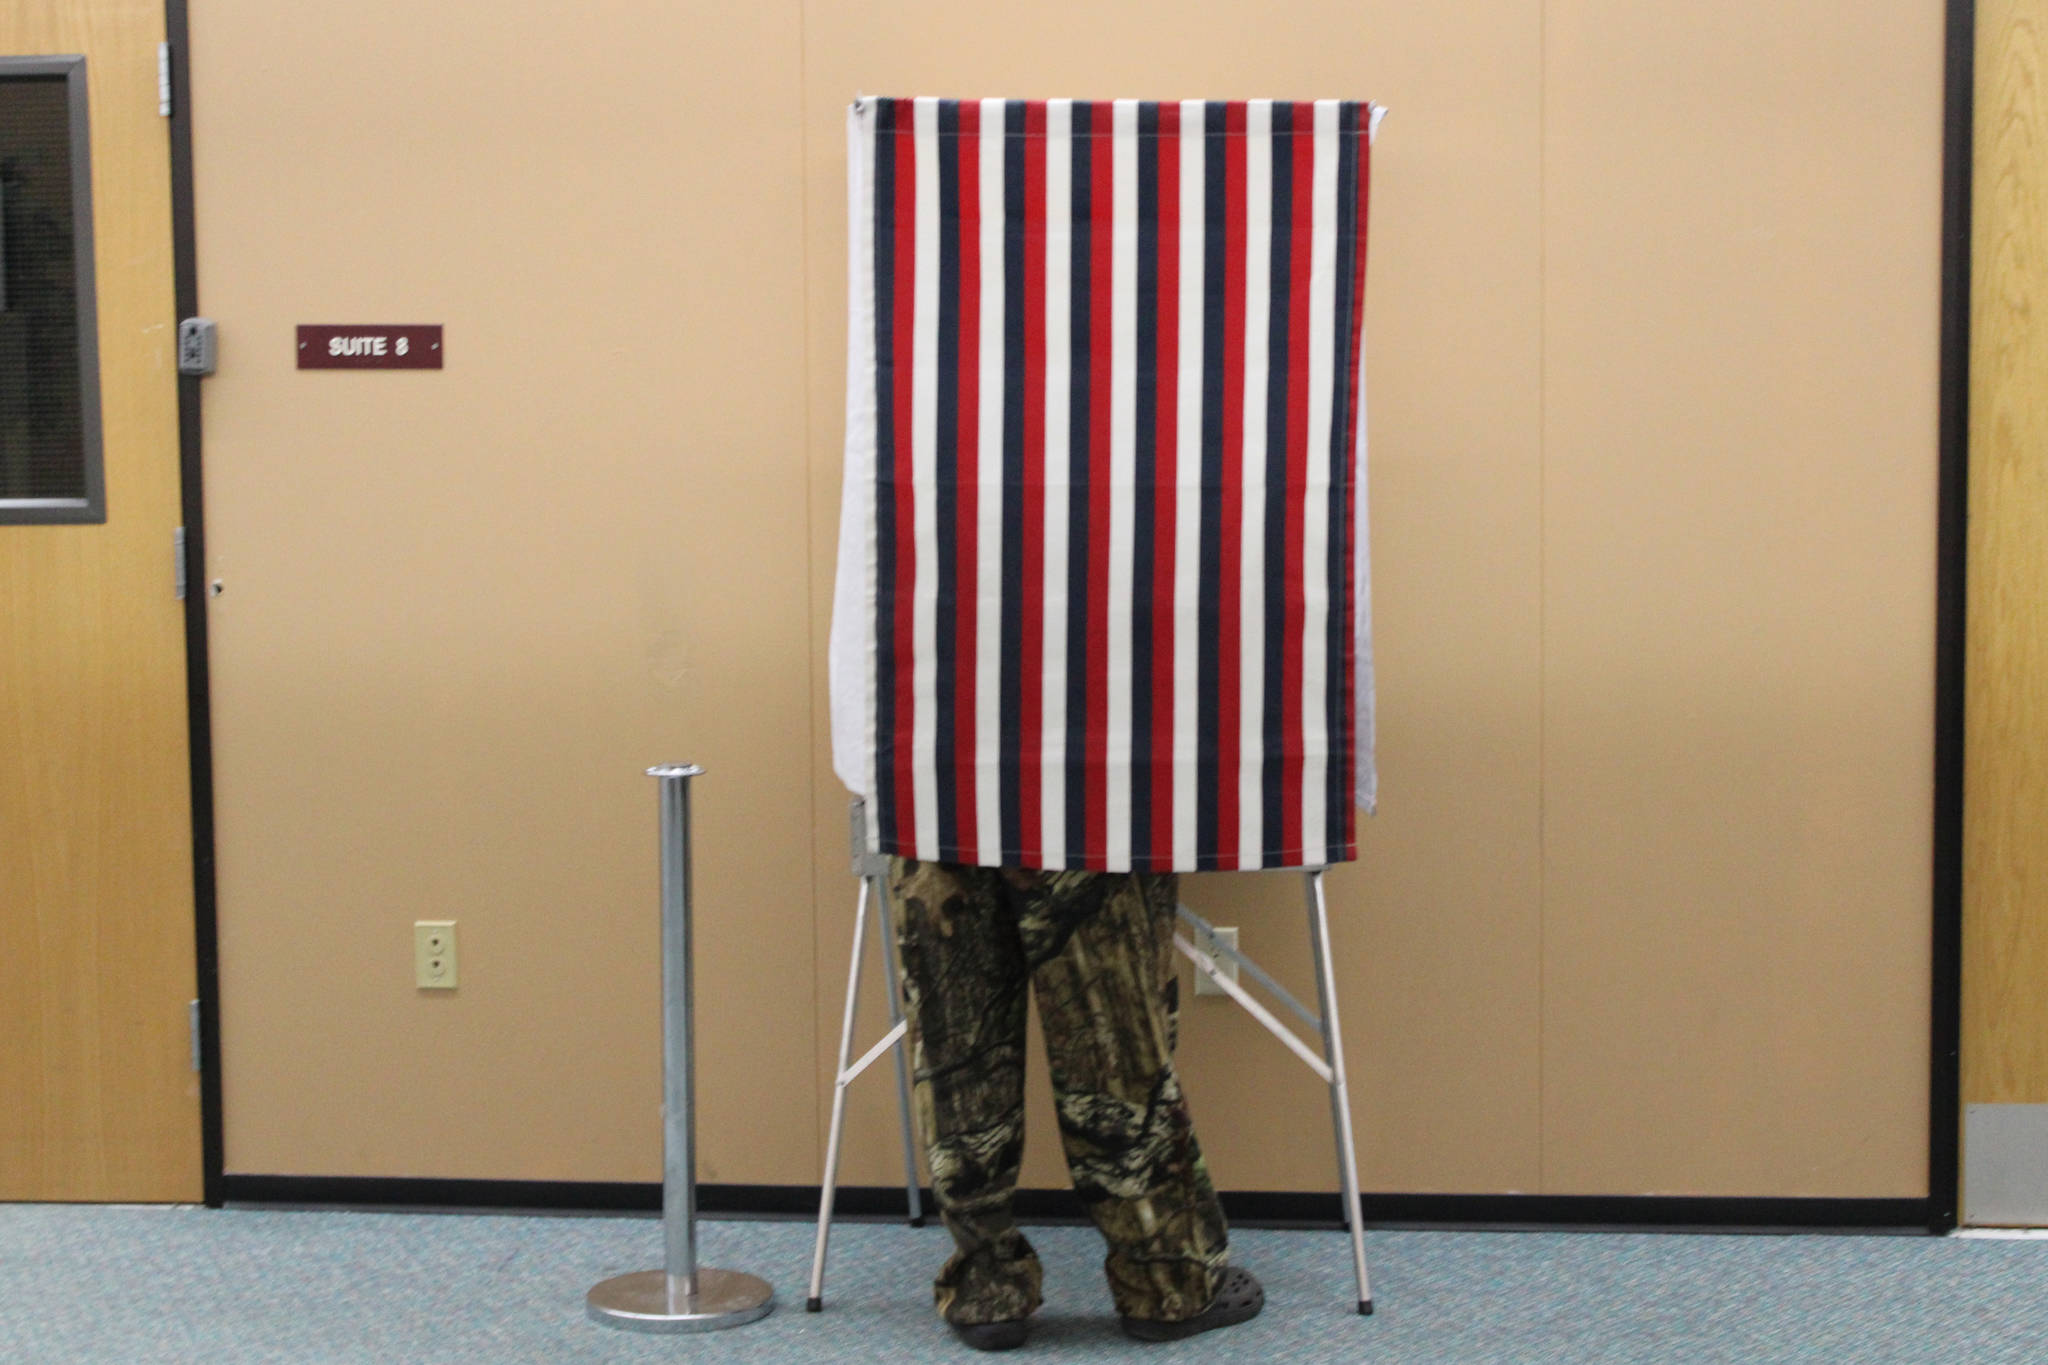 A man votes takes advantage of early voting at the Mendenhall Mall on Oct. 22, 2020. The FBI issued public guidance ahead of the General Election warning voters about what is and isn't federal election crime, and how to report such crimes if they're spotted. (Ben Hohenstatt / Juneau Empire)